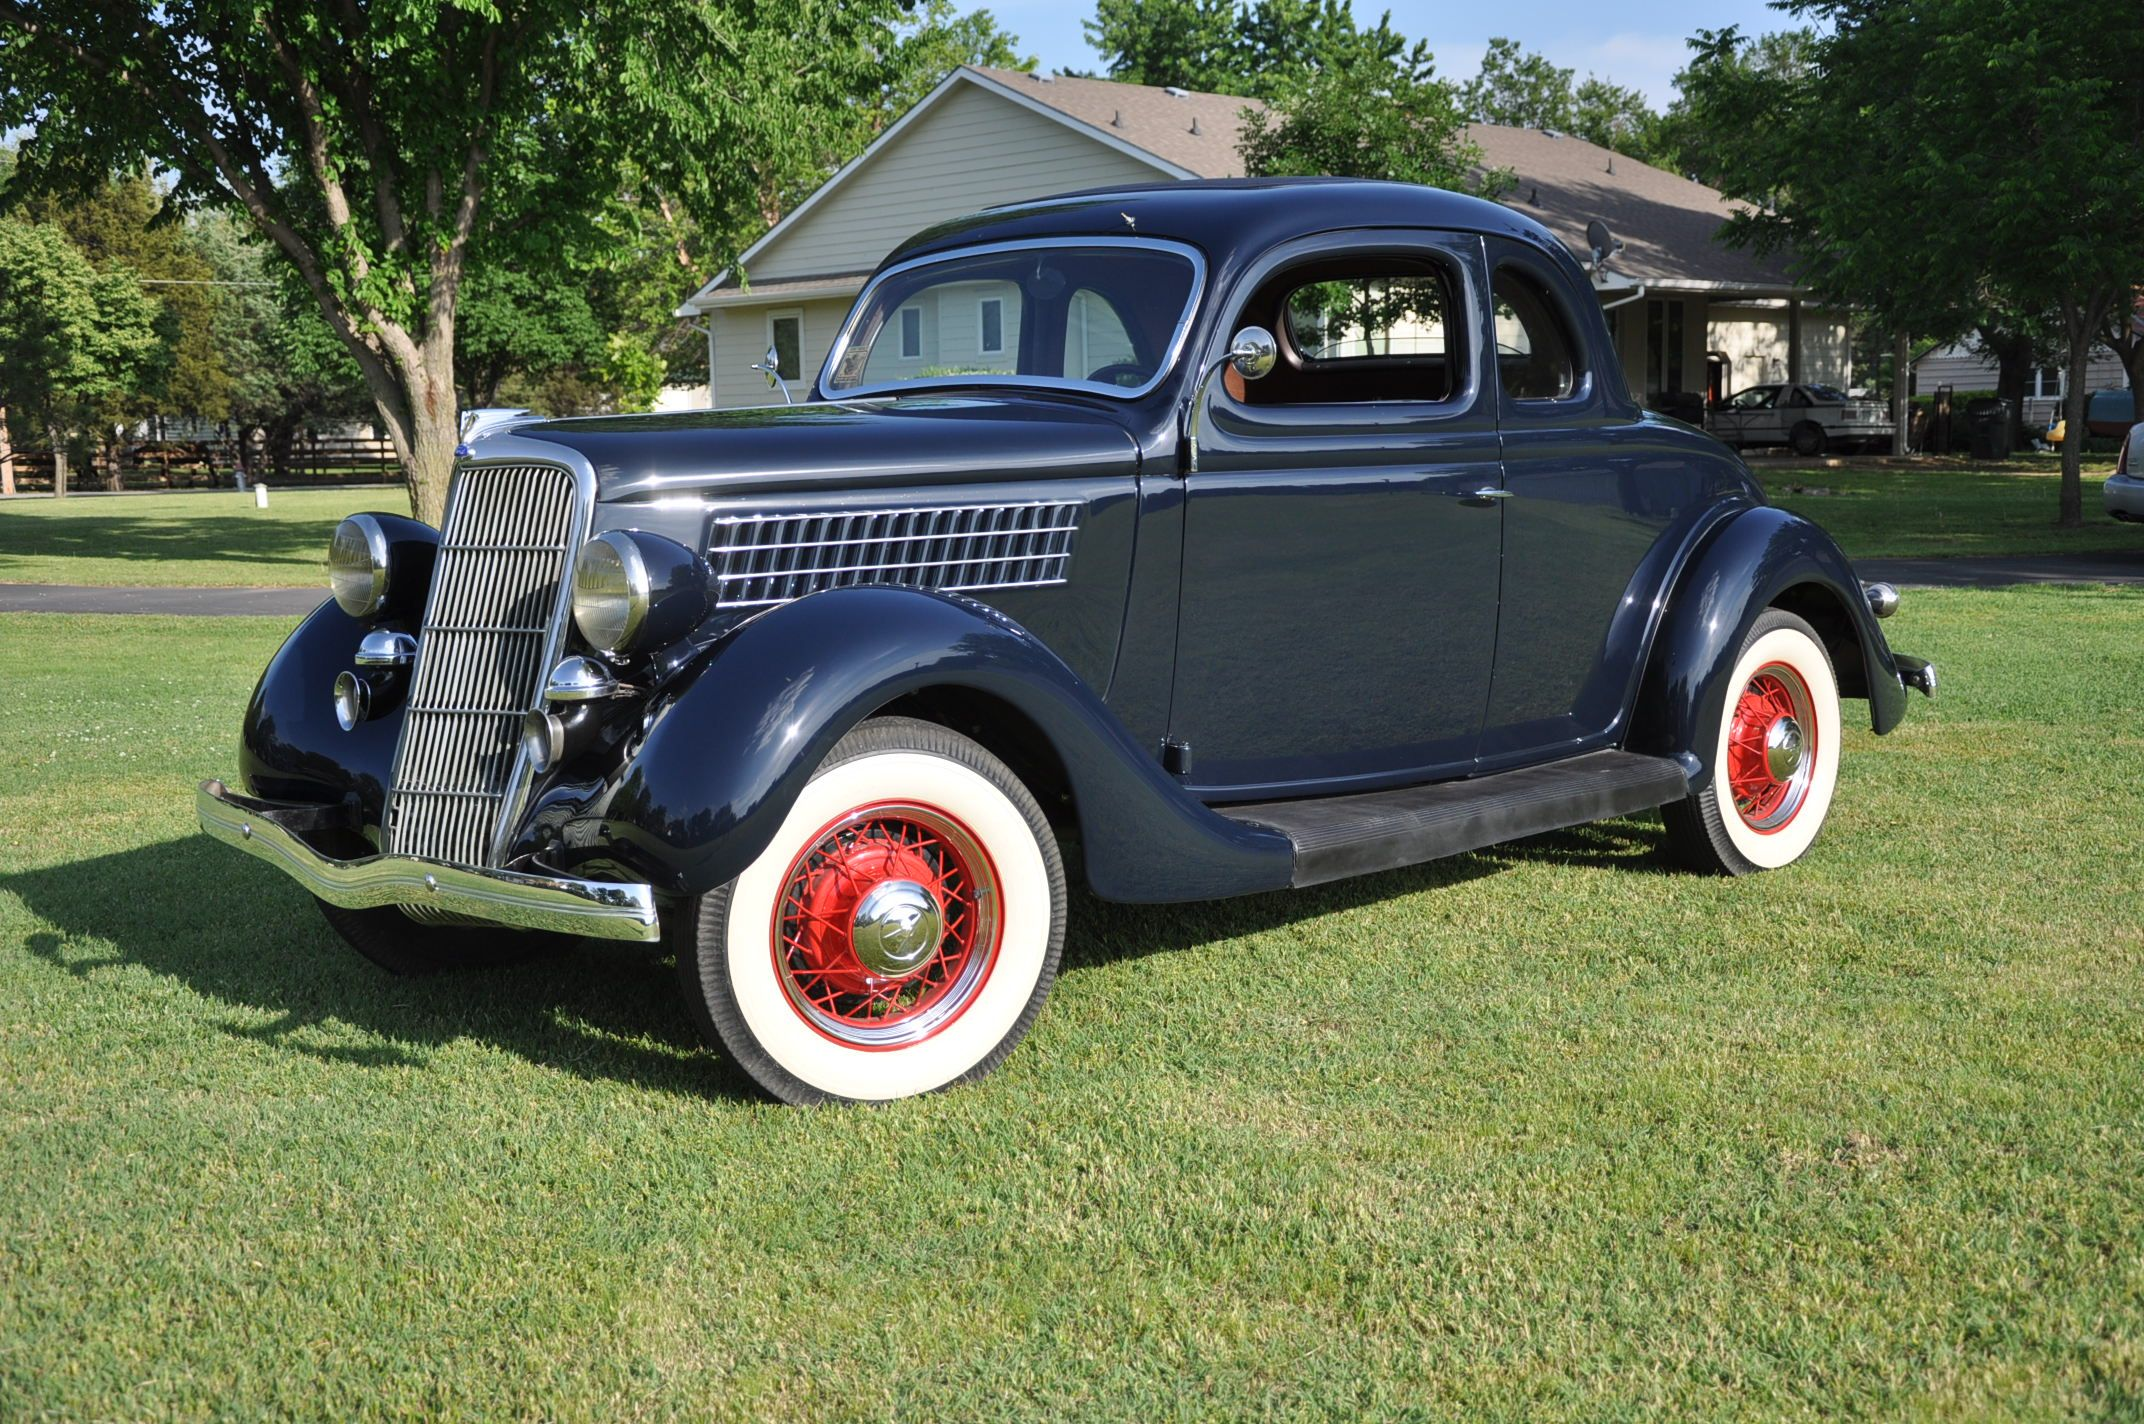 1935 ford 3 window coupe motor 39 n tv cars and motorcycles for 1935 ford 3 window